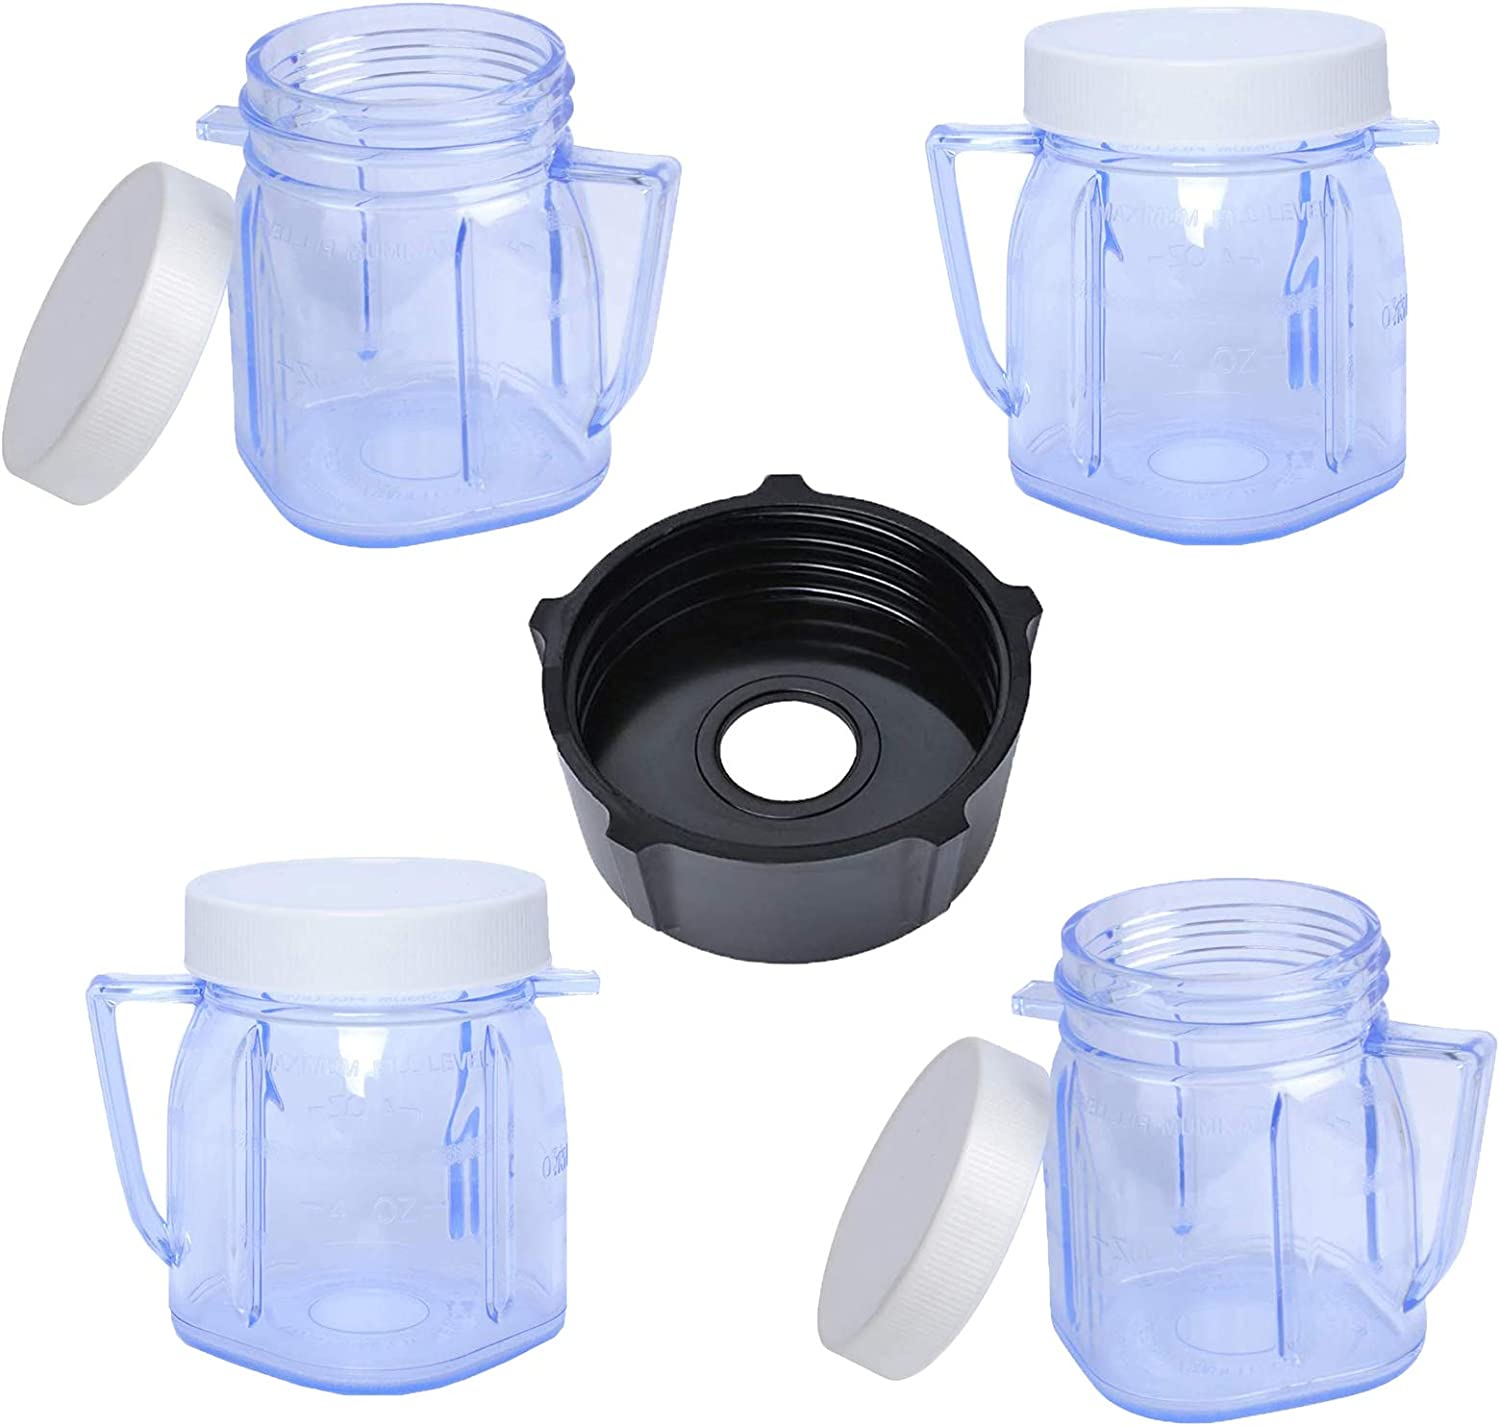 Replacement Parts for Oster and Osterizer Blenders, 4937Mini 1-cup Plastic Jar and 4902 Blender Jar Bottom